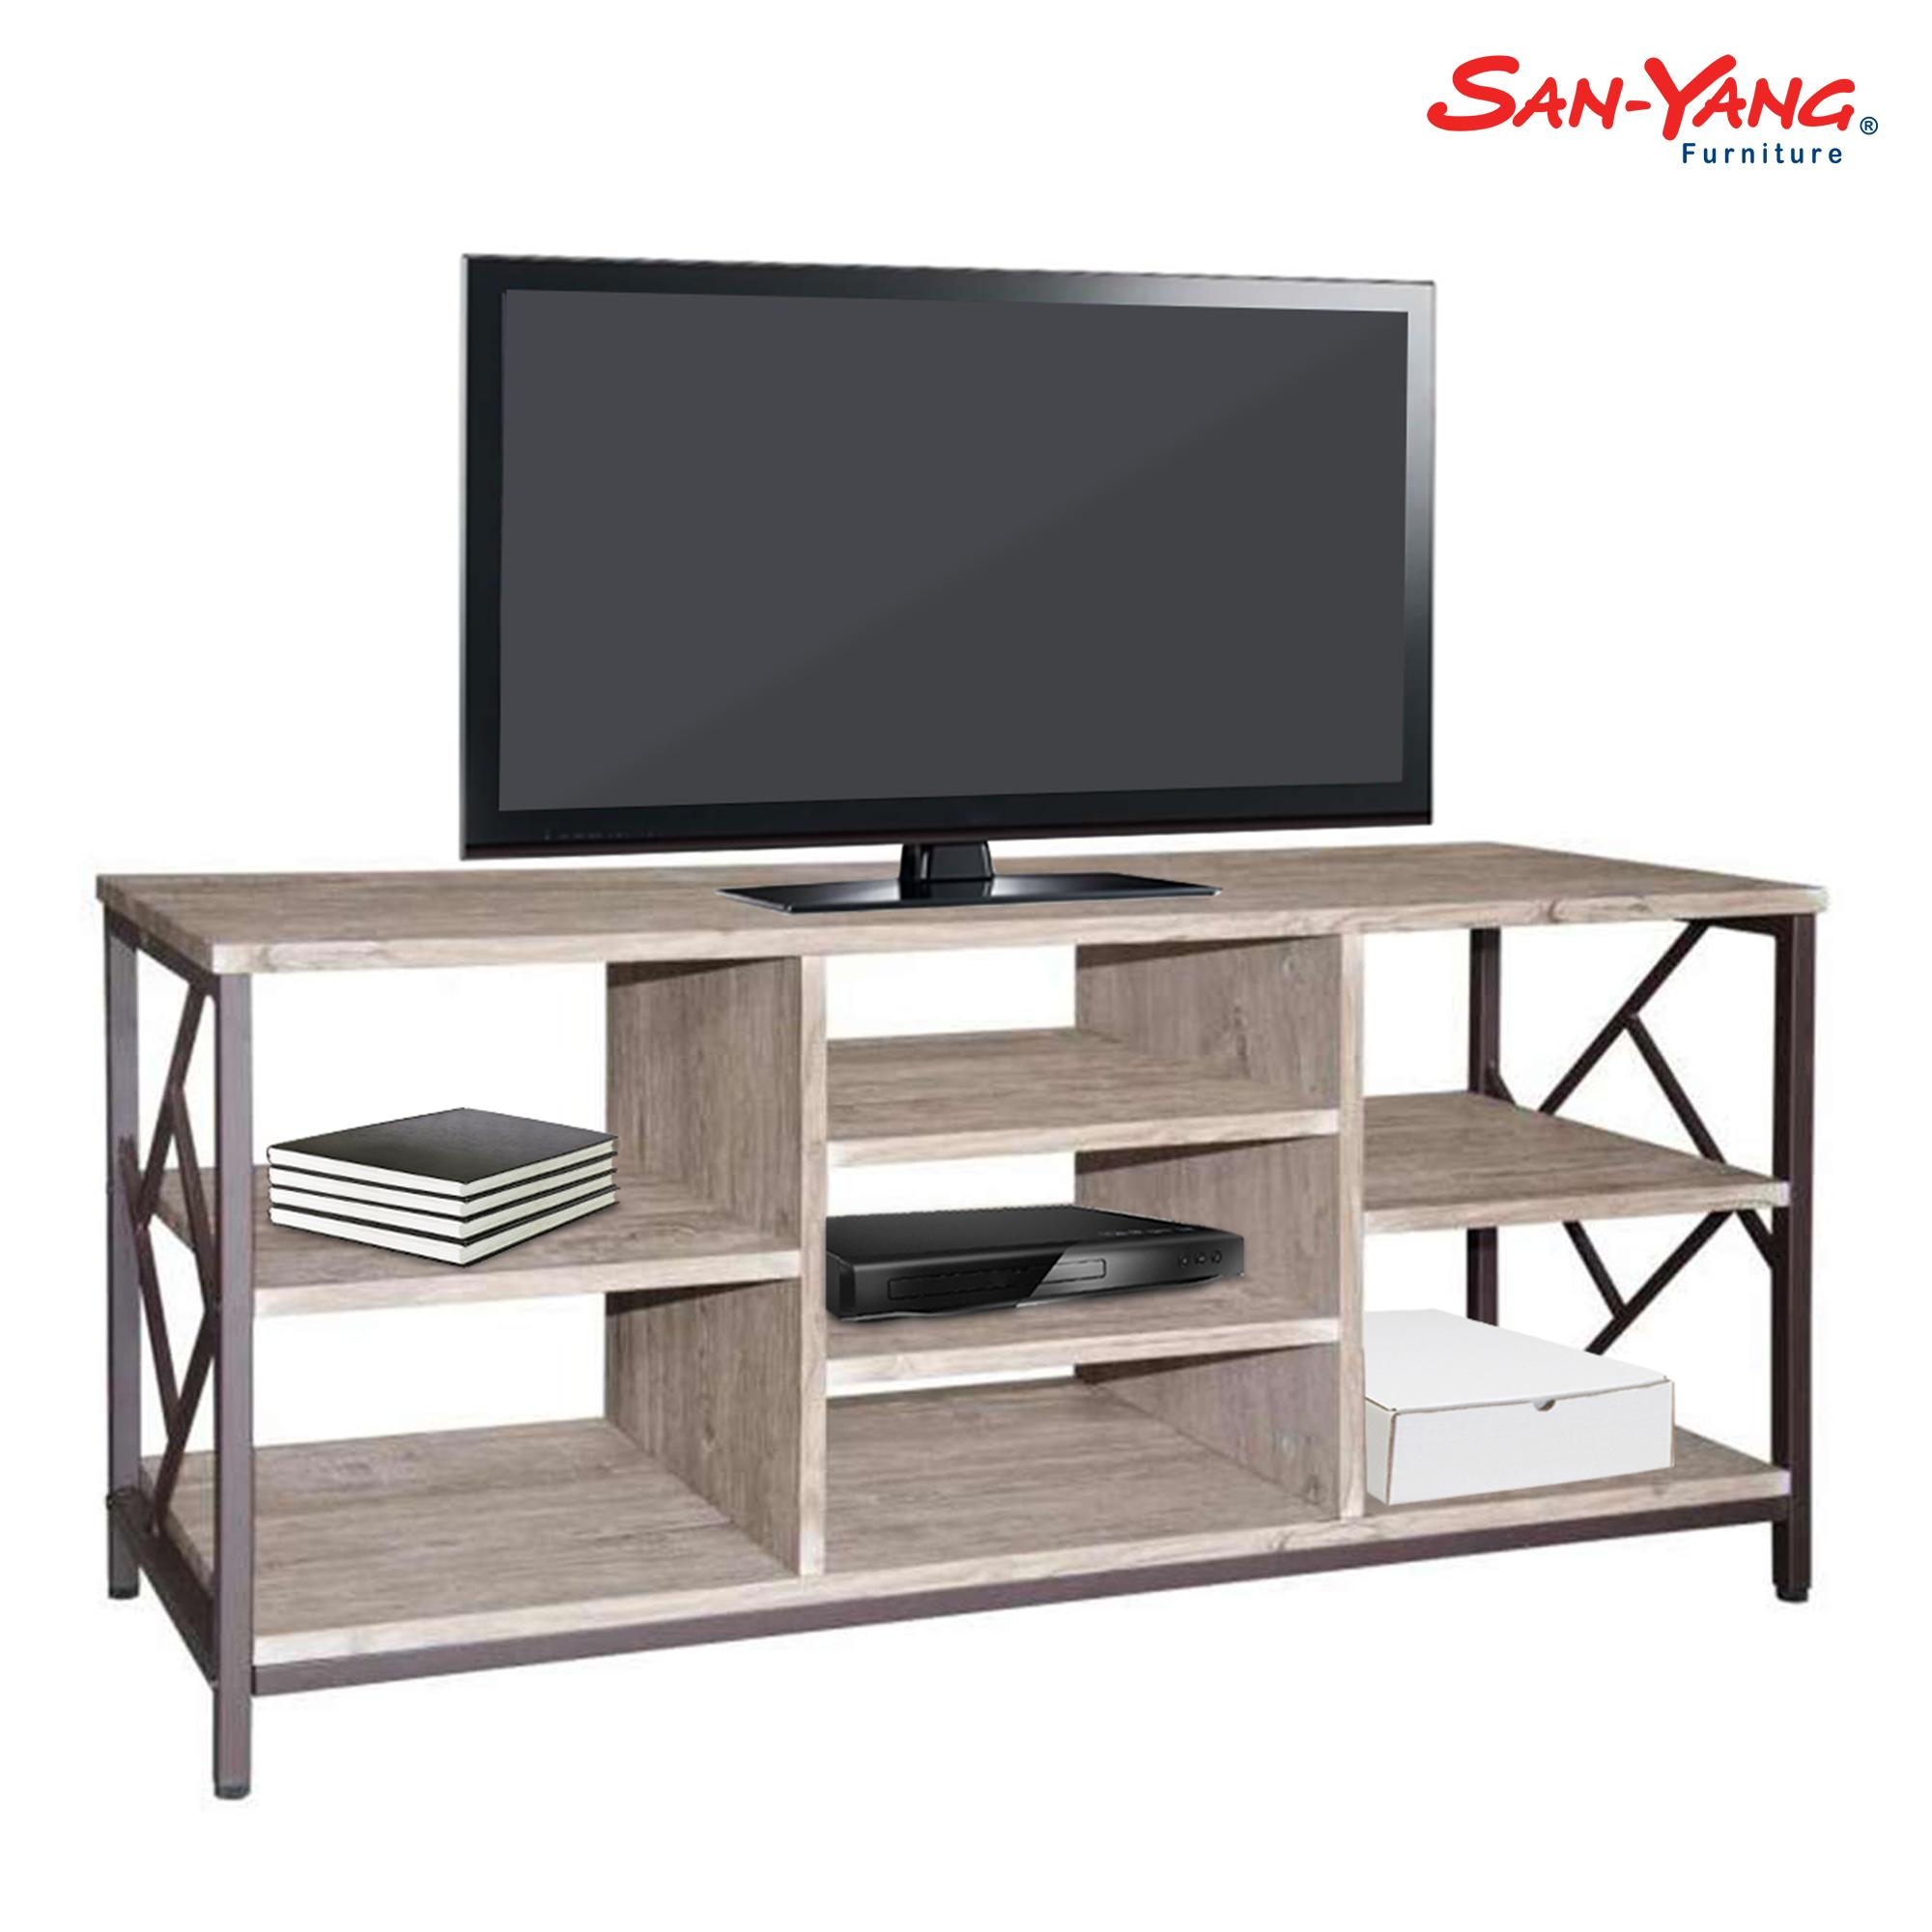 San Yang Tv Stand Fts1601 Sy Buy Sell Online Poufs New With Cheap